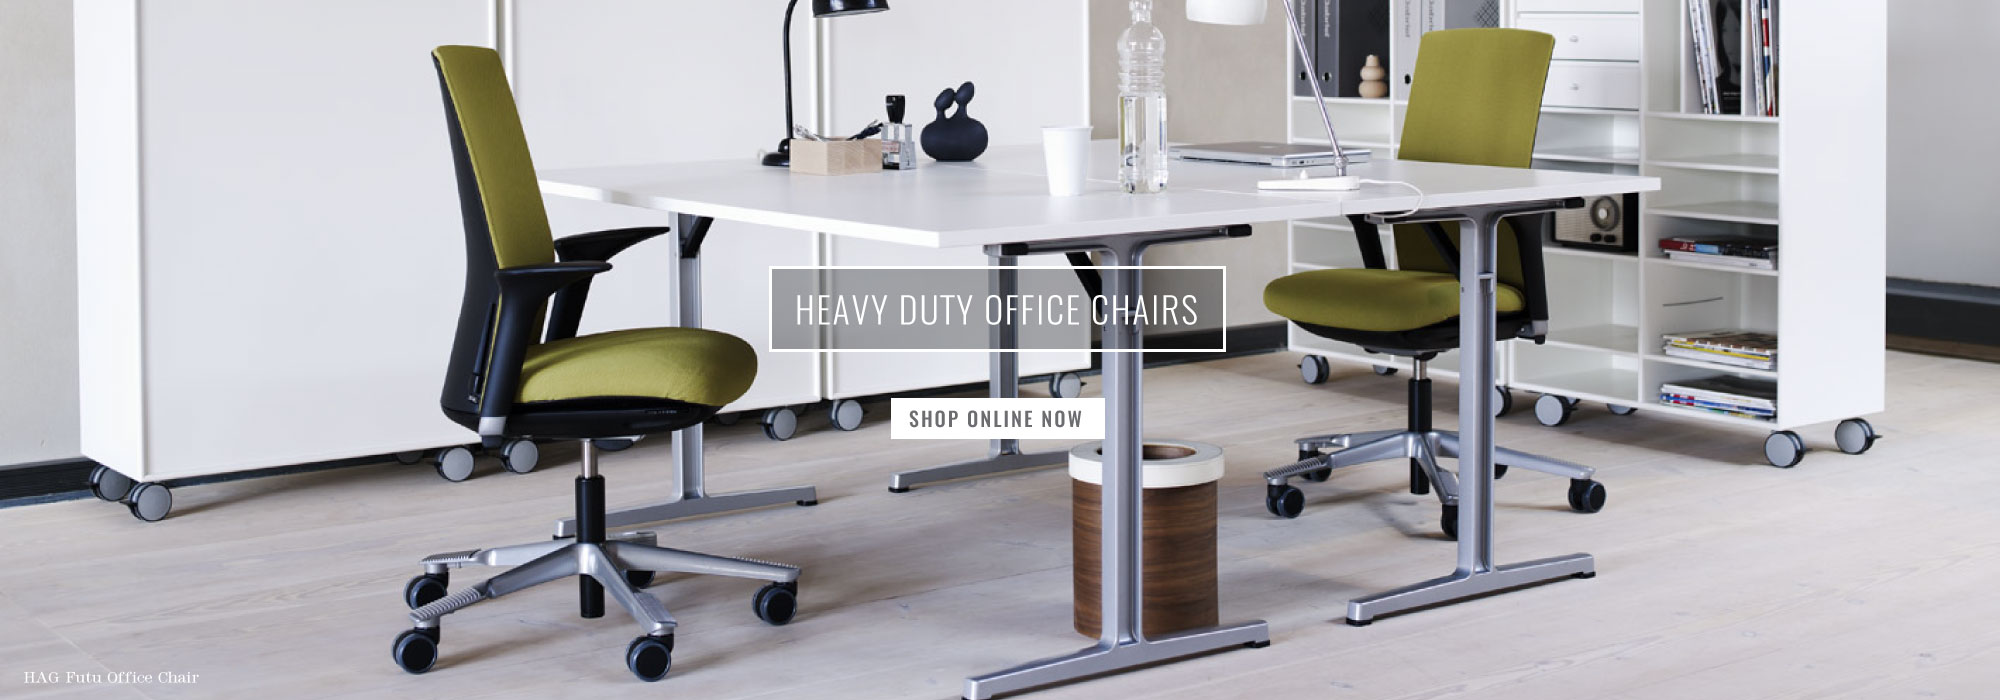 Green HAG futu office chairs in a contemporary office